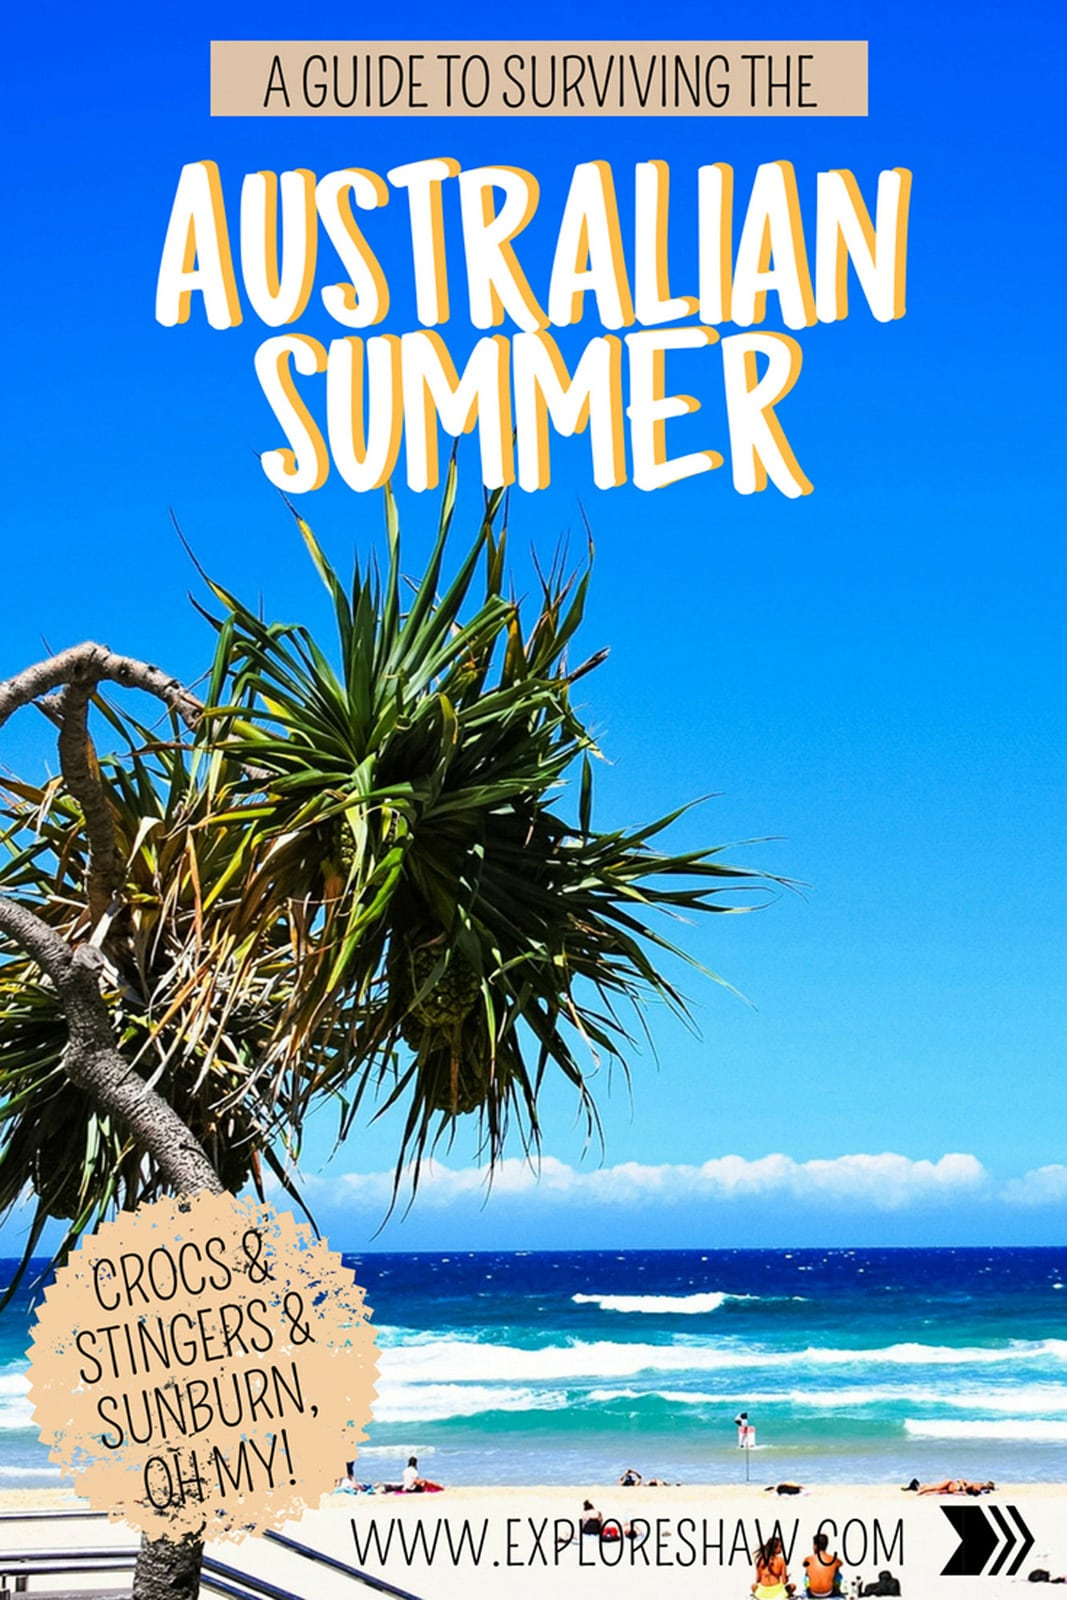 A GUIDE TO SURVIVING THE AUSTRALIAN SUMMER